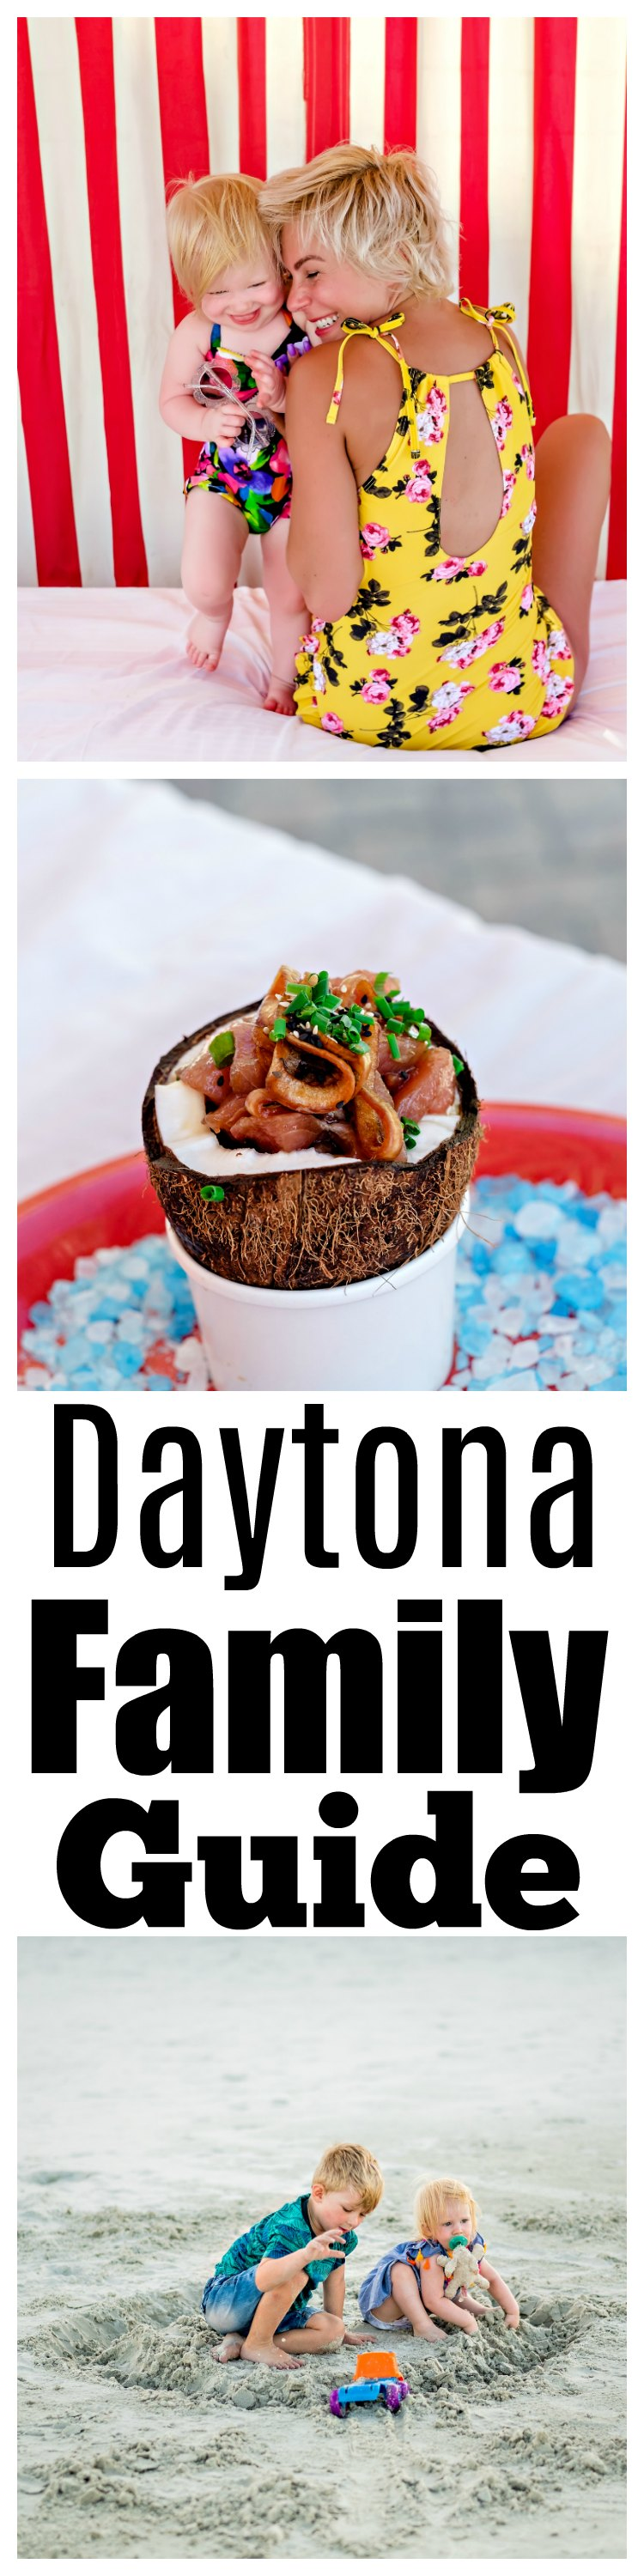 Daytona Family Guide - Daytona Beach Family Vacation by Atlanta mom blogger Happily Hughes